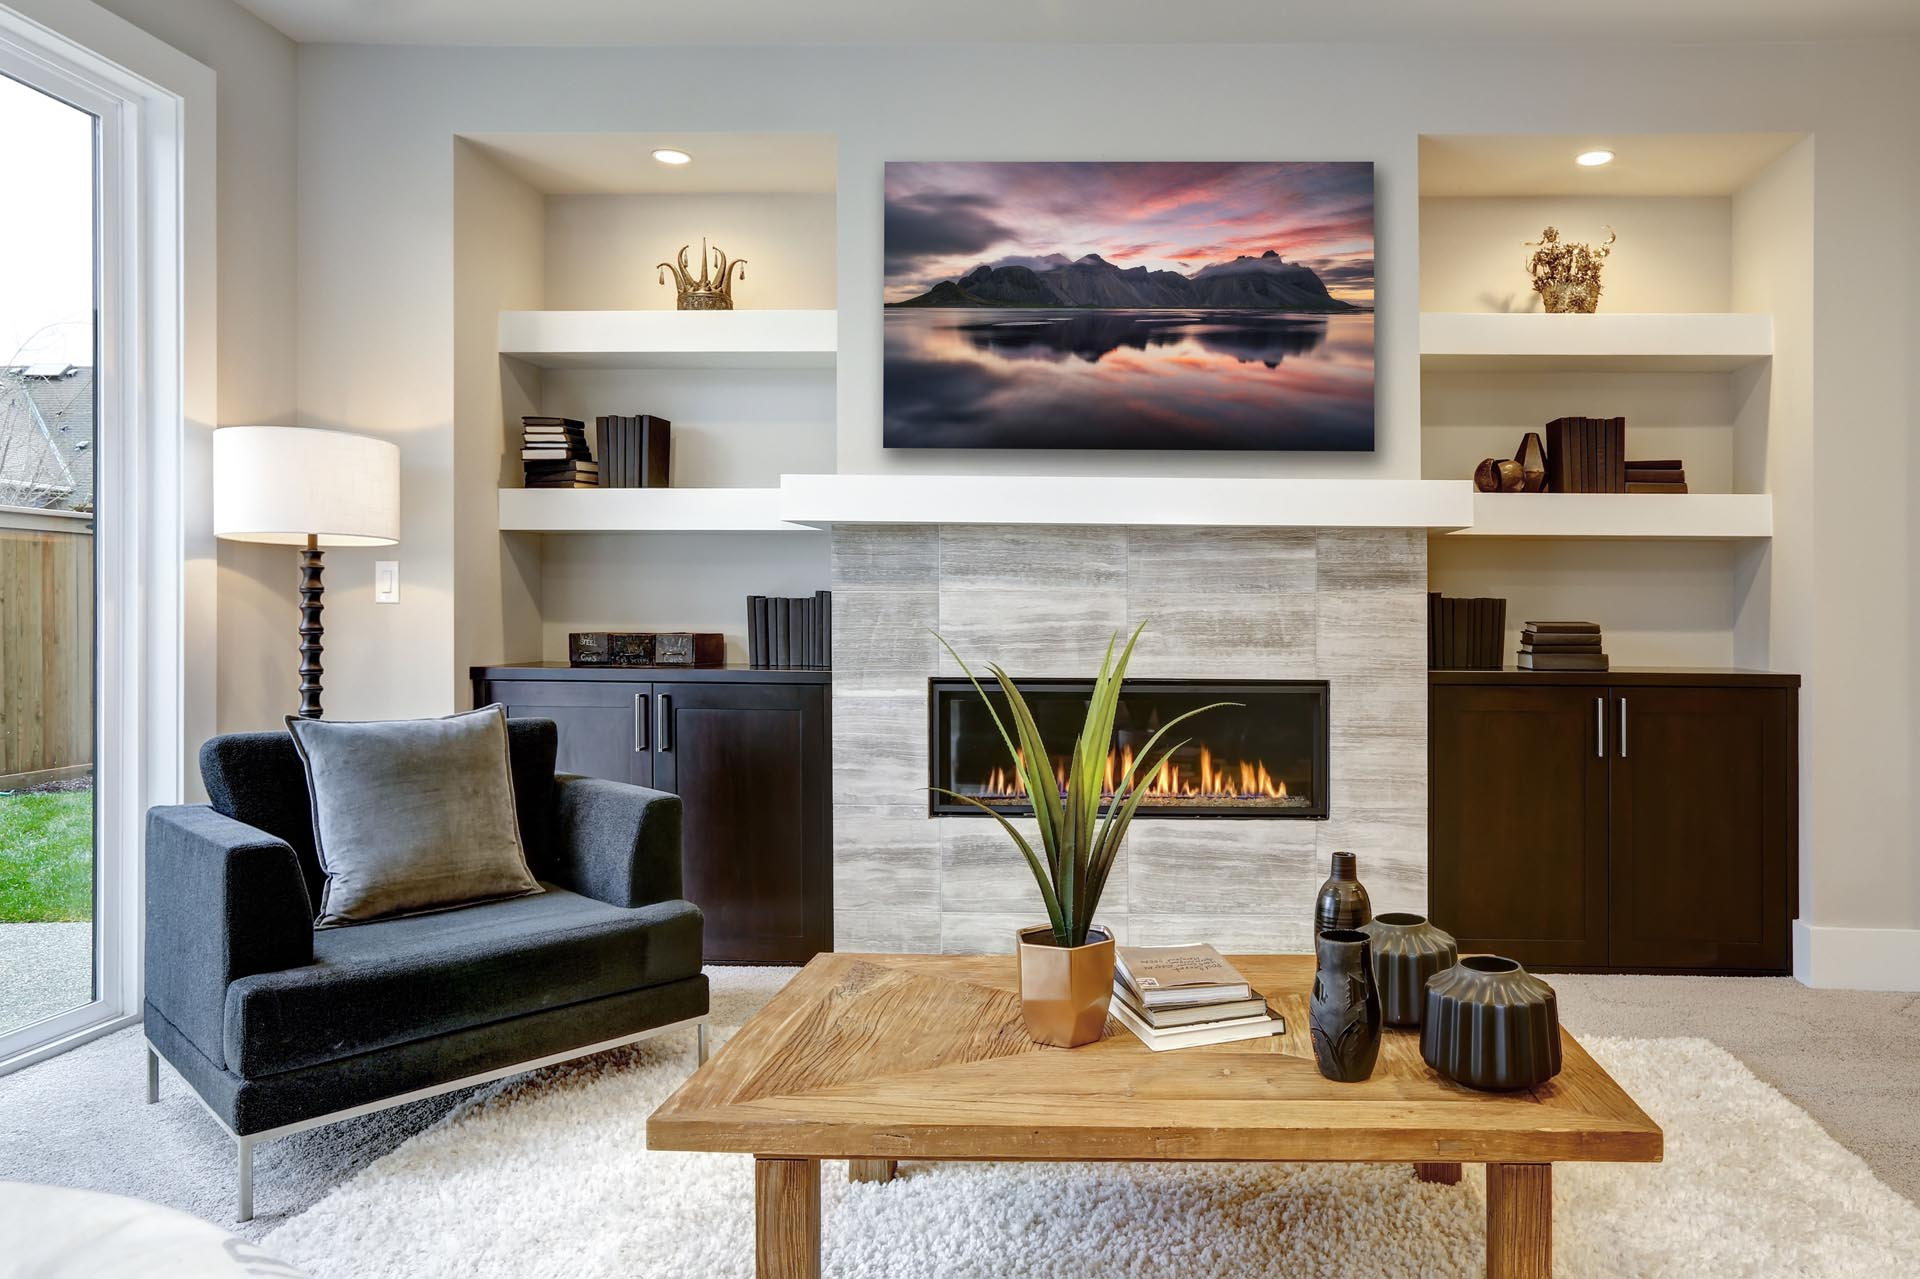 Fine art photography print  hanging above mantle in living room